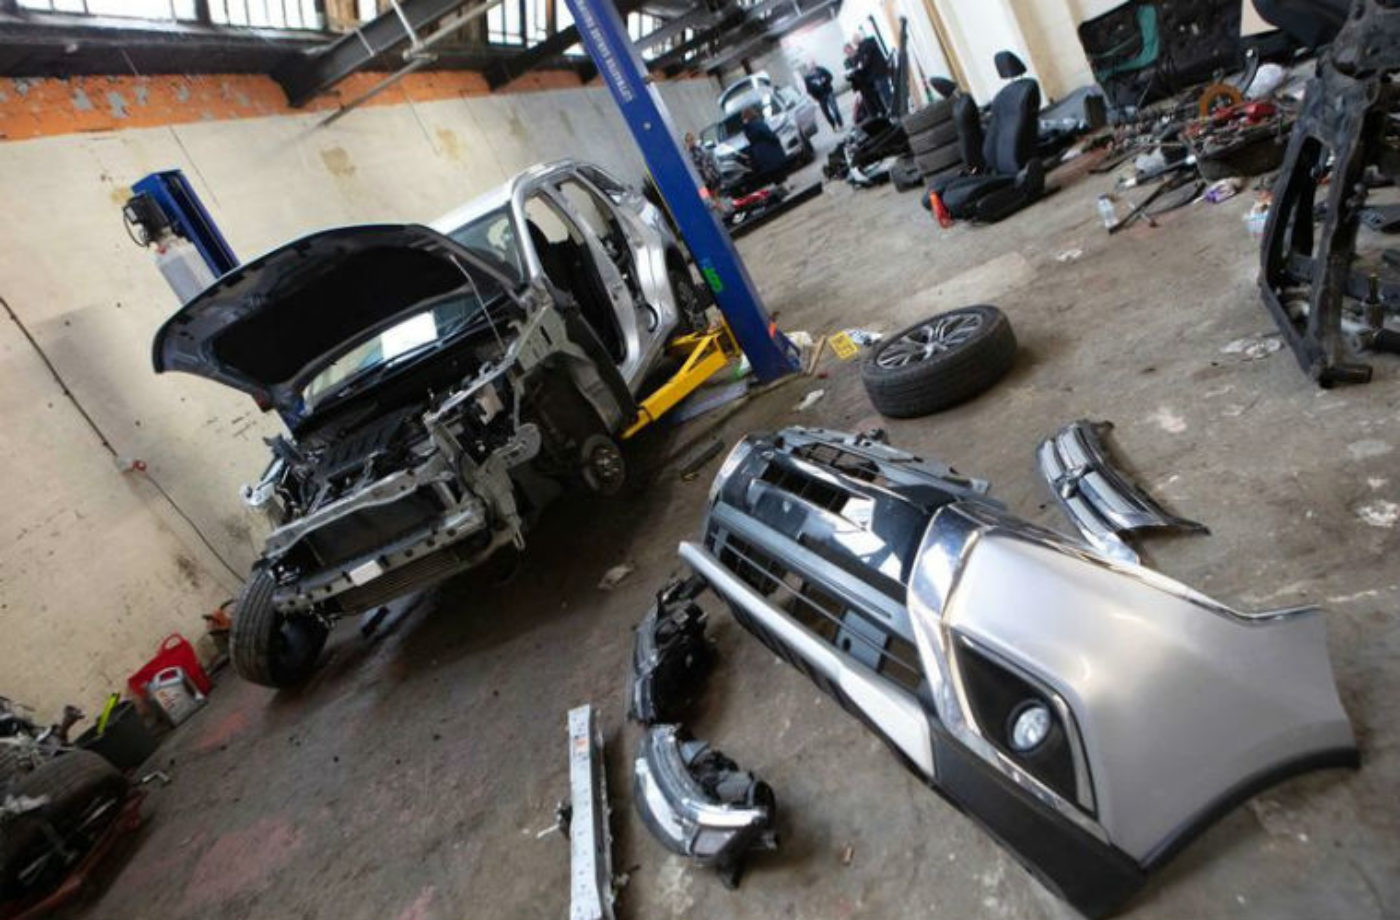 Car parts, cash and suspected stolen cars seized from Manchester workshops